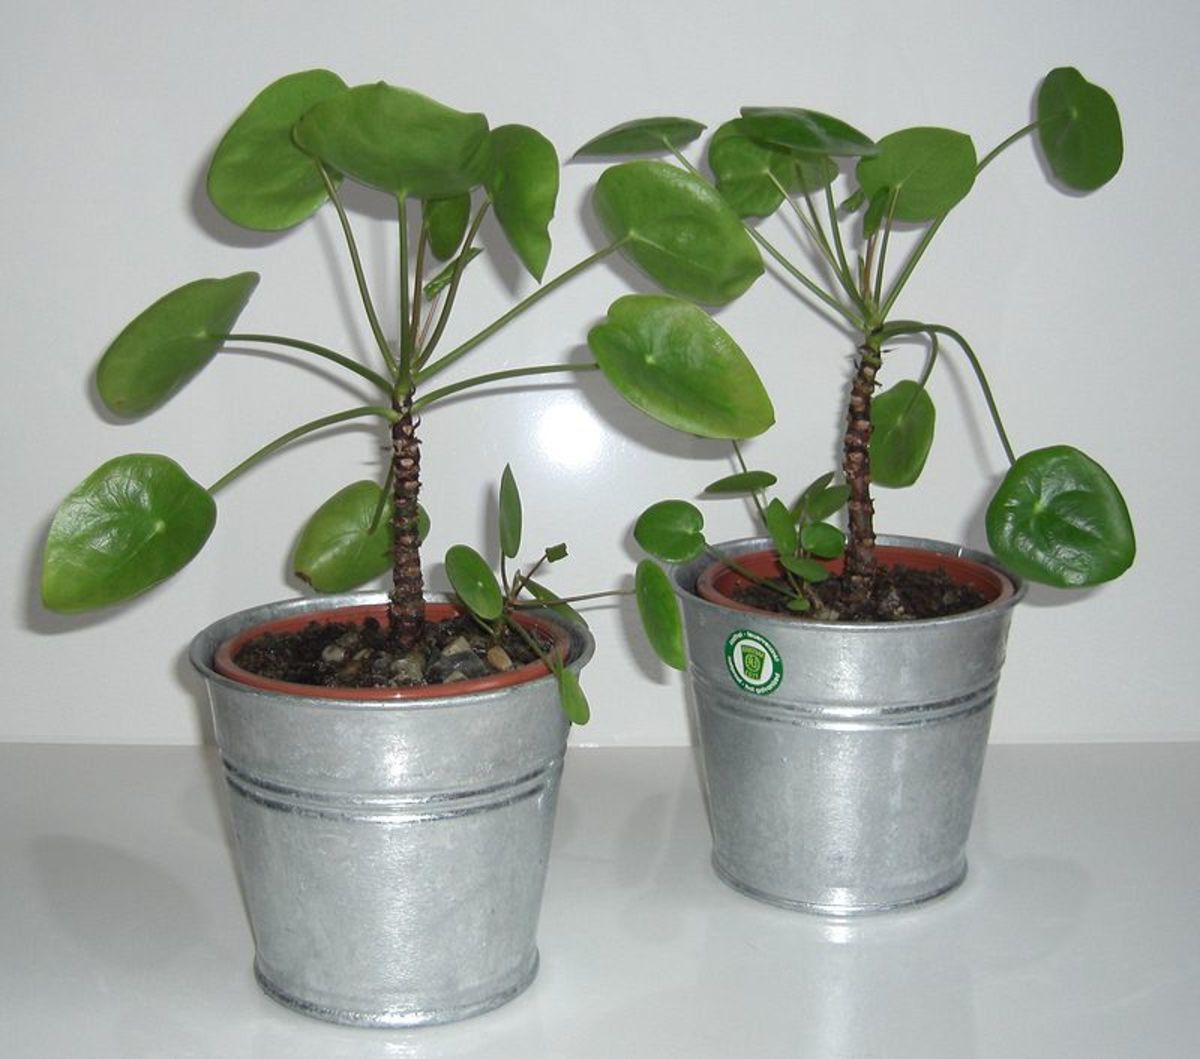 The plants are propagated via offsets which can be separated from the parent plant.